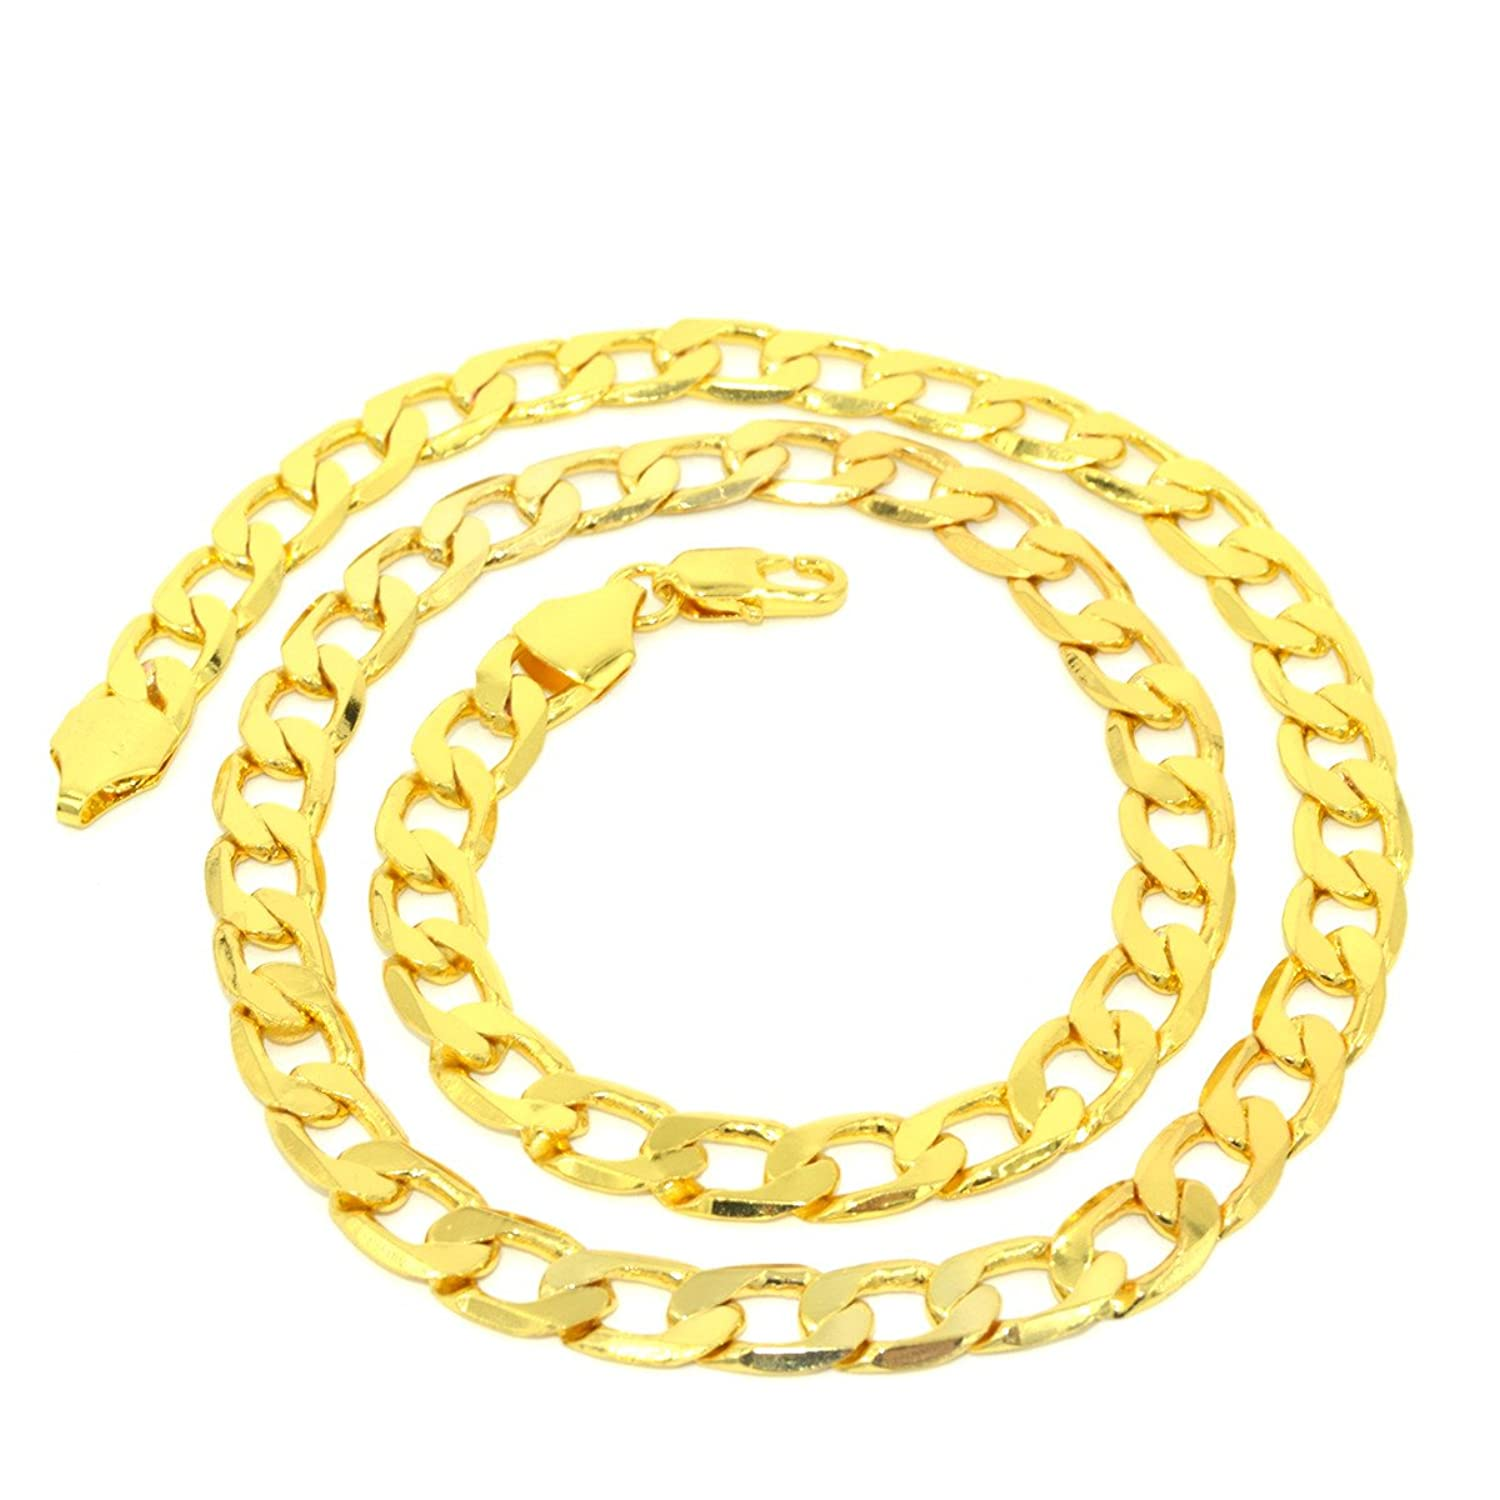 contents bangles package chain little pp plated x plating surface color stylish kg chains bracelet goldfish gold weight product bracelets for